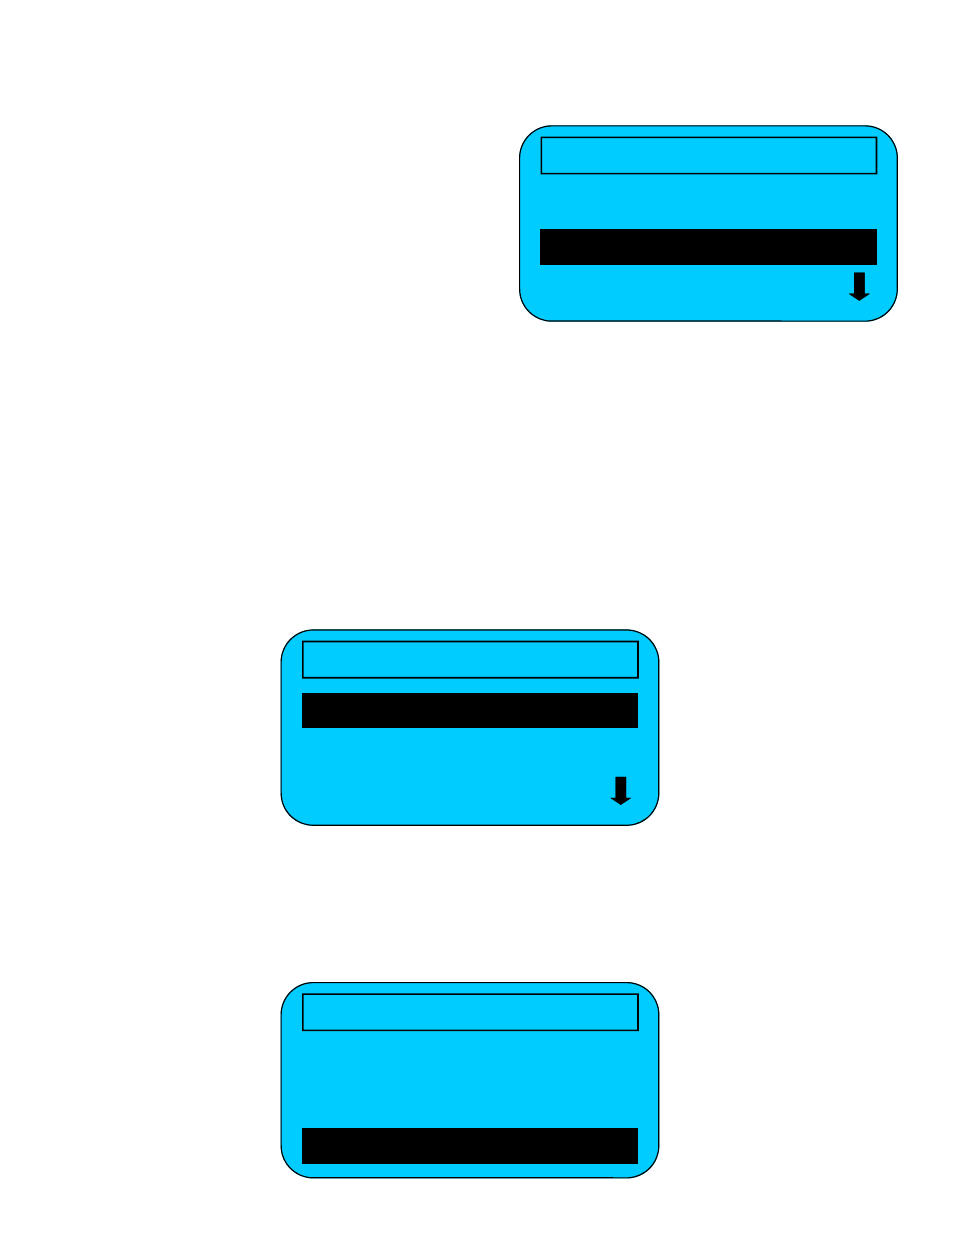 Vehicle info menu | SCT X3 ECONOMIZER (Ford 3030) User